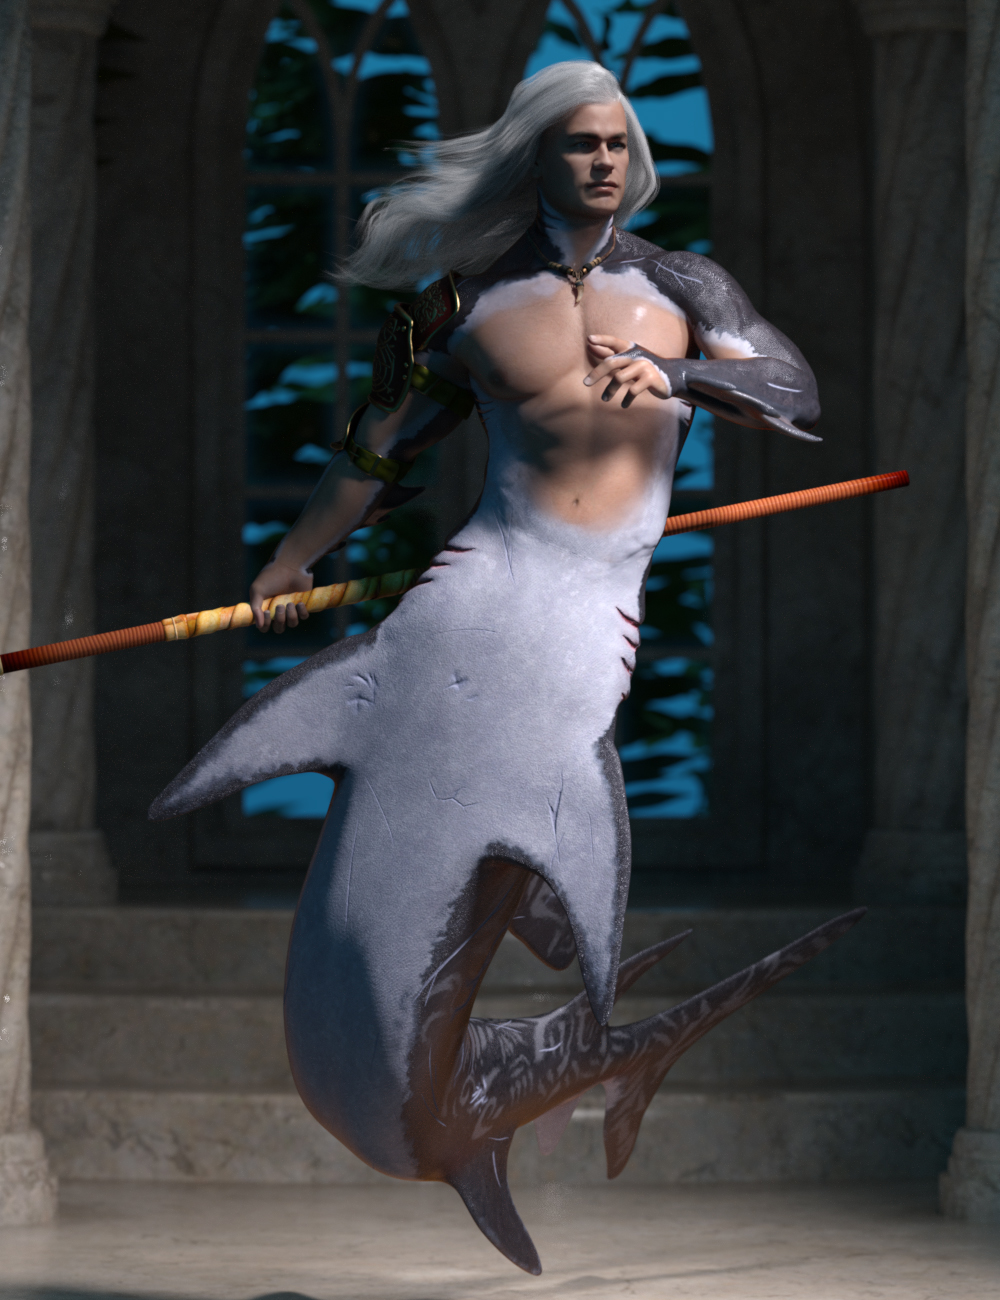 Scarred Hierarchical Poses for Genesis 8 Male and FPE Shark Tail by: Ensary, 3D Models by Daz 3D